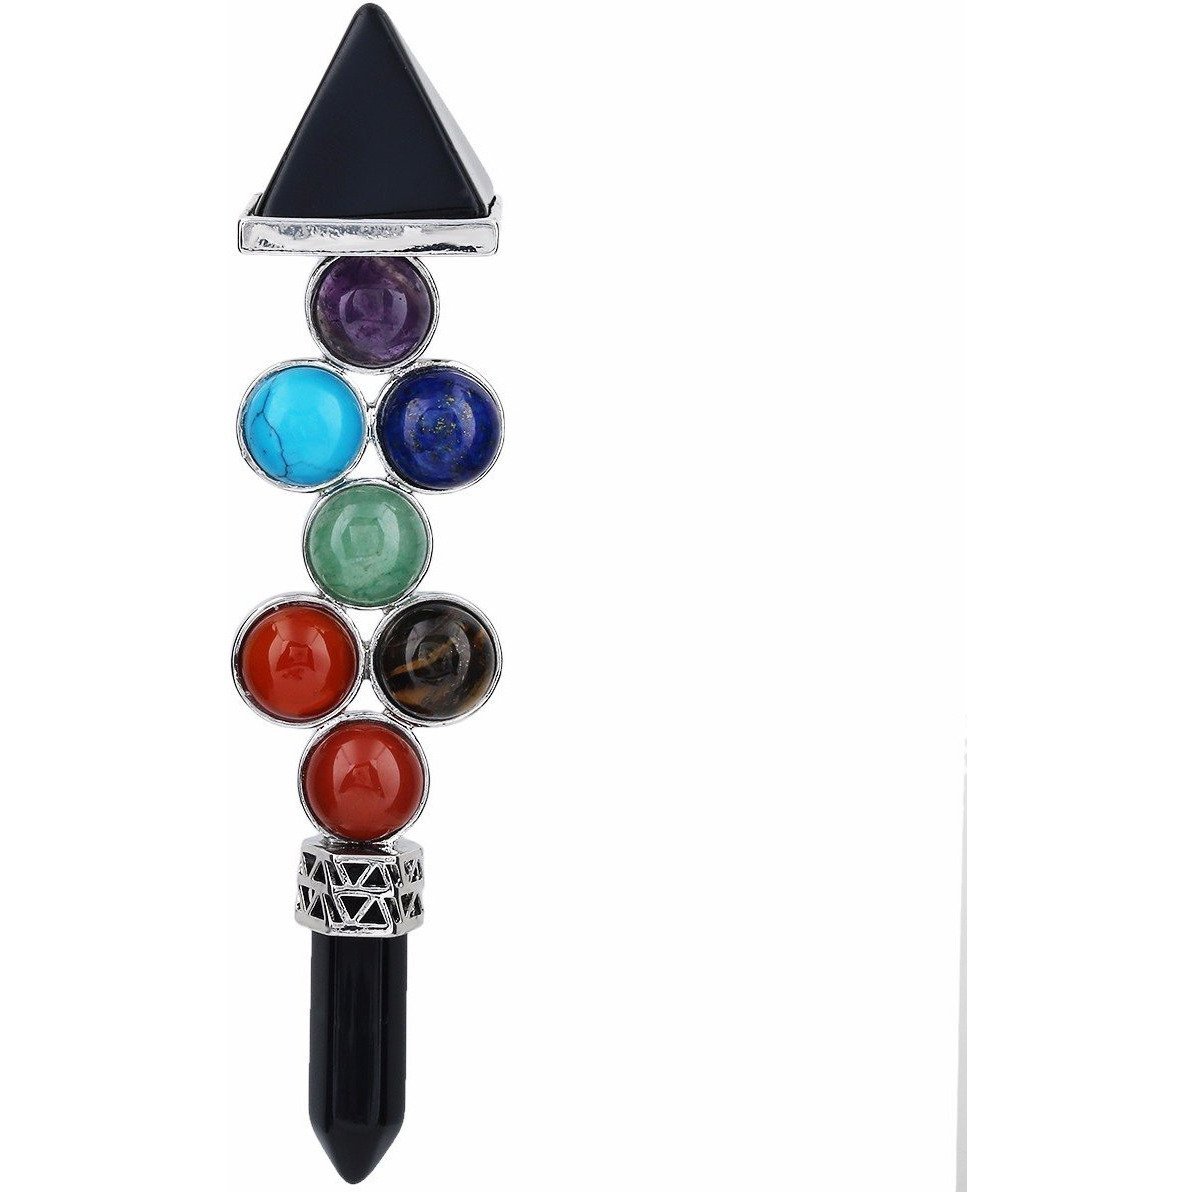 Winmaarc 7 Chakra Beads Reiki Pyramid Wand Stick Point for Balancing Energy,Meditation,Crystal Healing